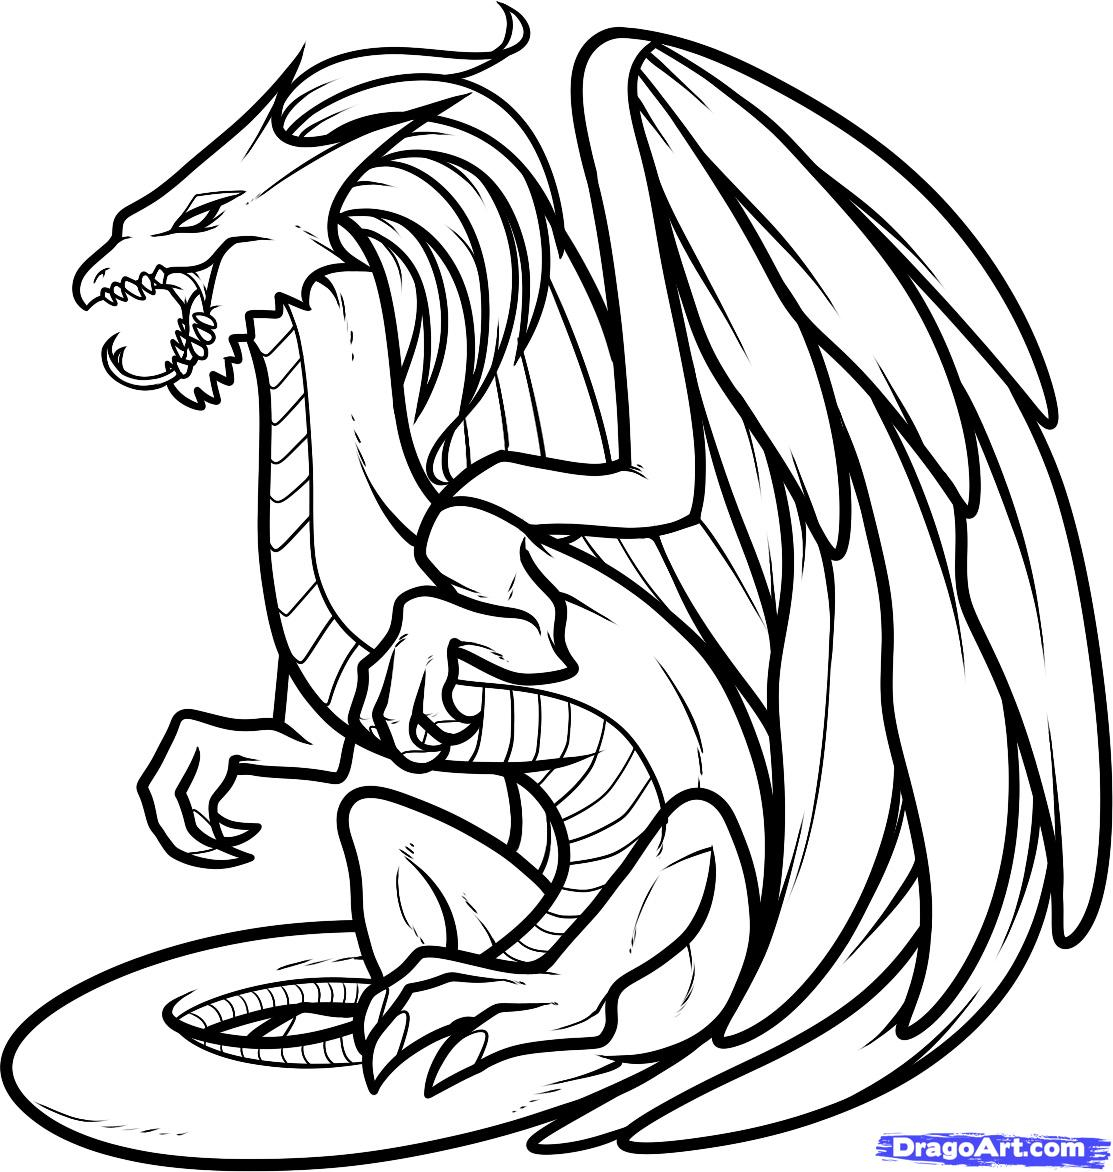 Top 25 Free Printable Dragon Coloring Pages Online | Dragon ... | 1172x1113